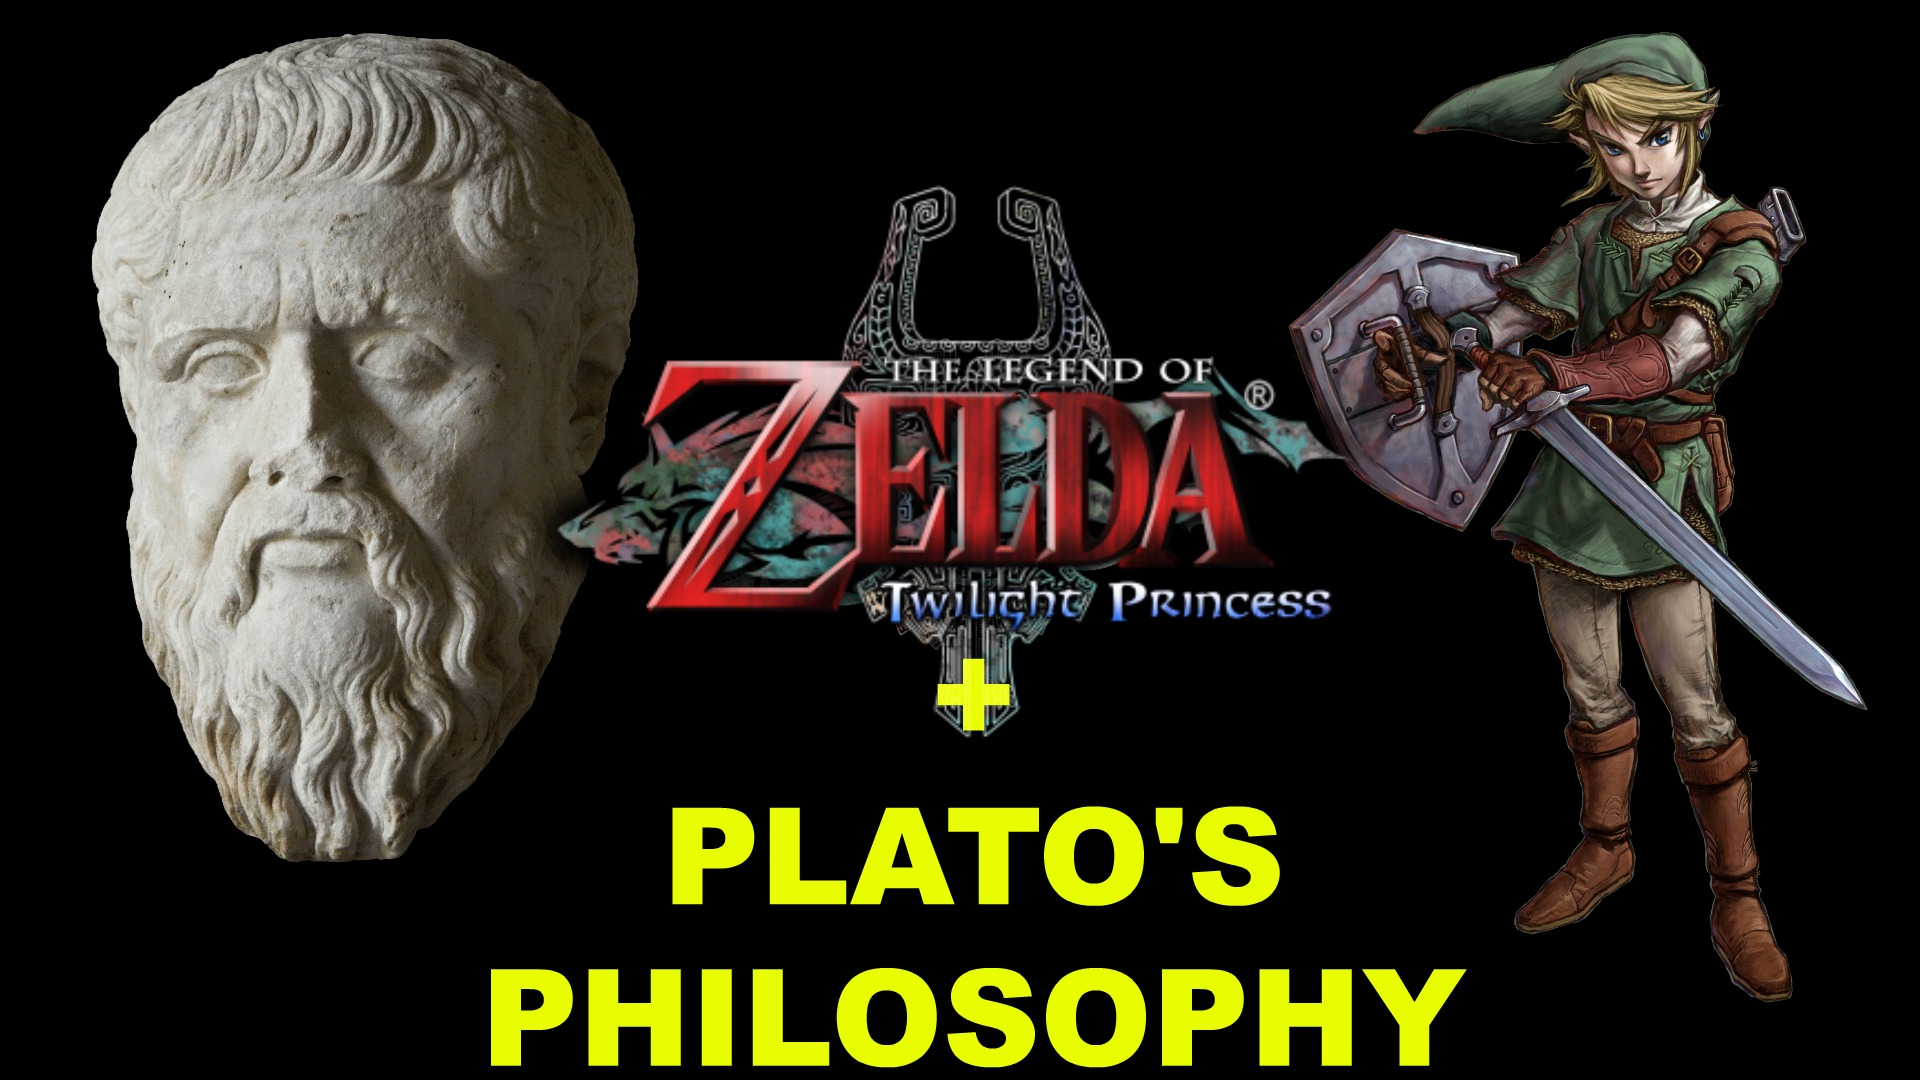 Twilight Princess and Plato: The Philosophy of Two Worlds